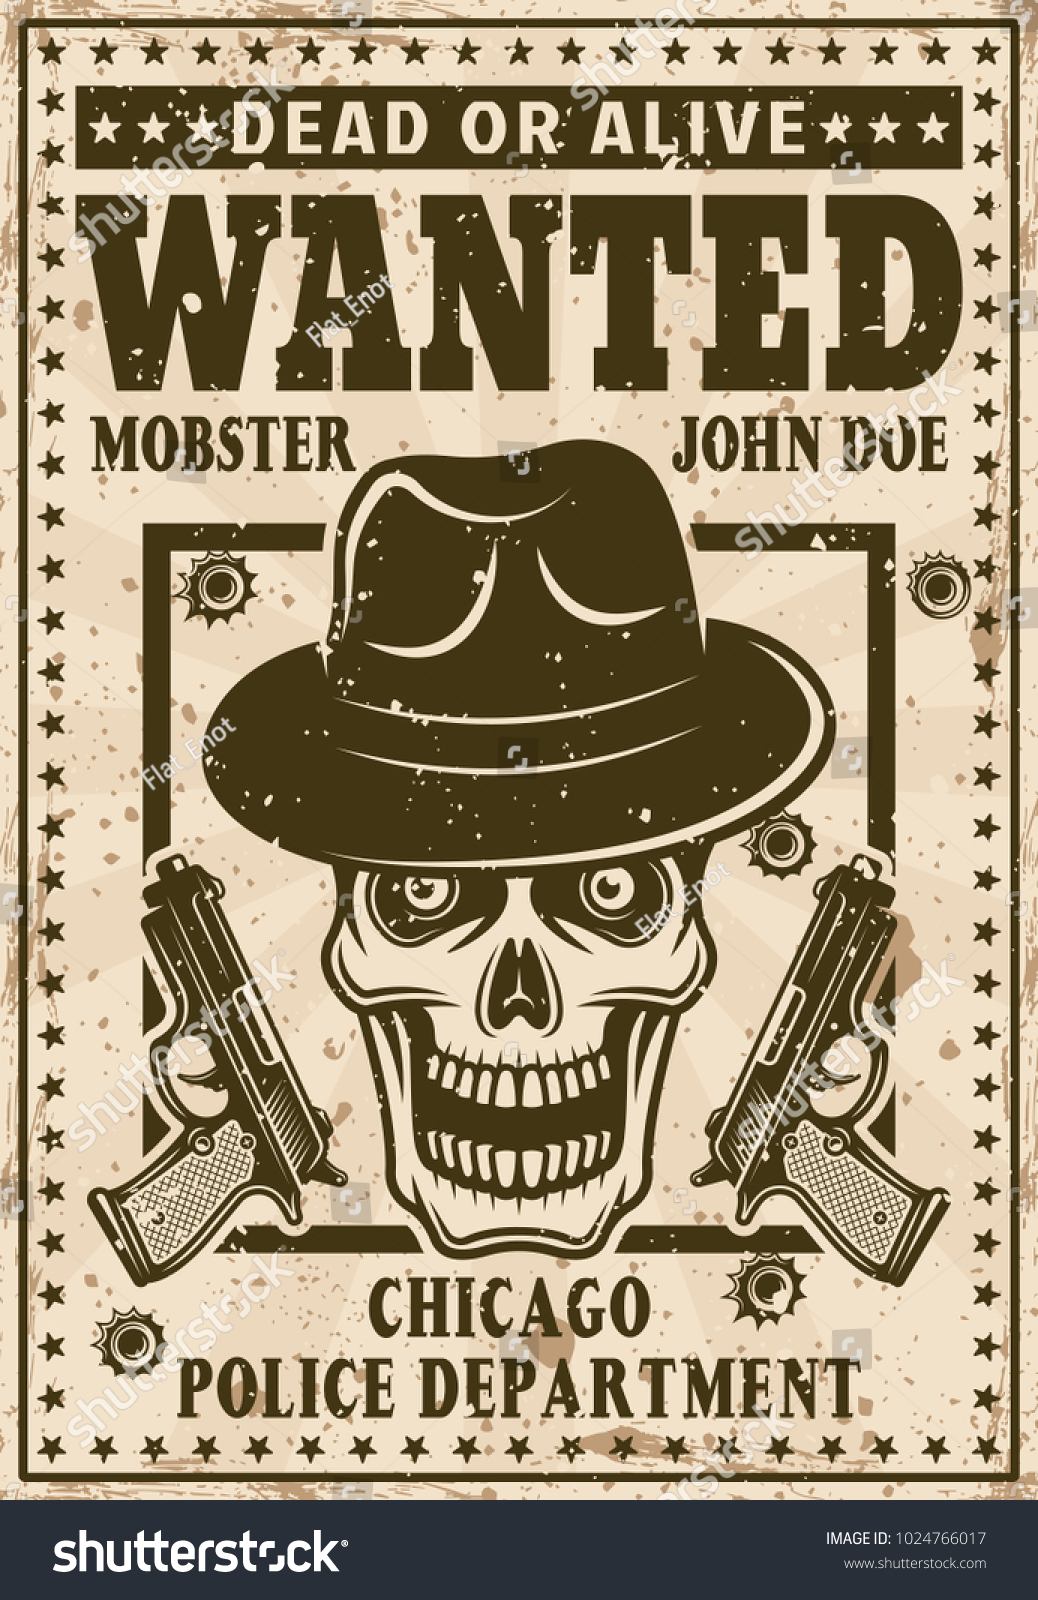 Mafia Wanted Poster Vintage Style Mobster Stock Vector Royalty Free